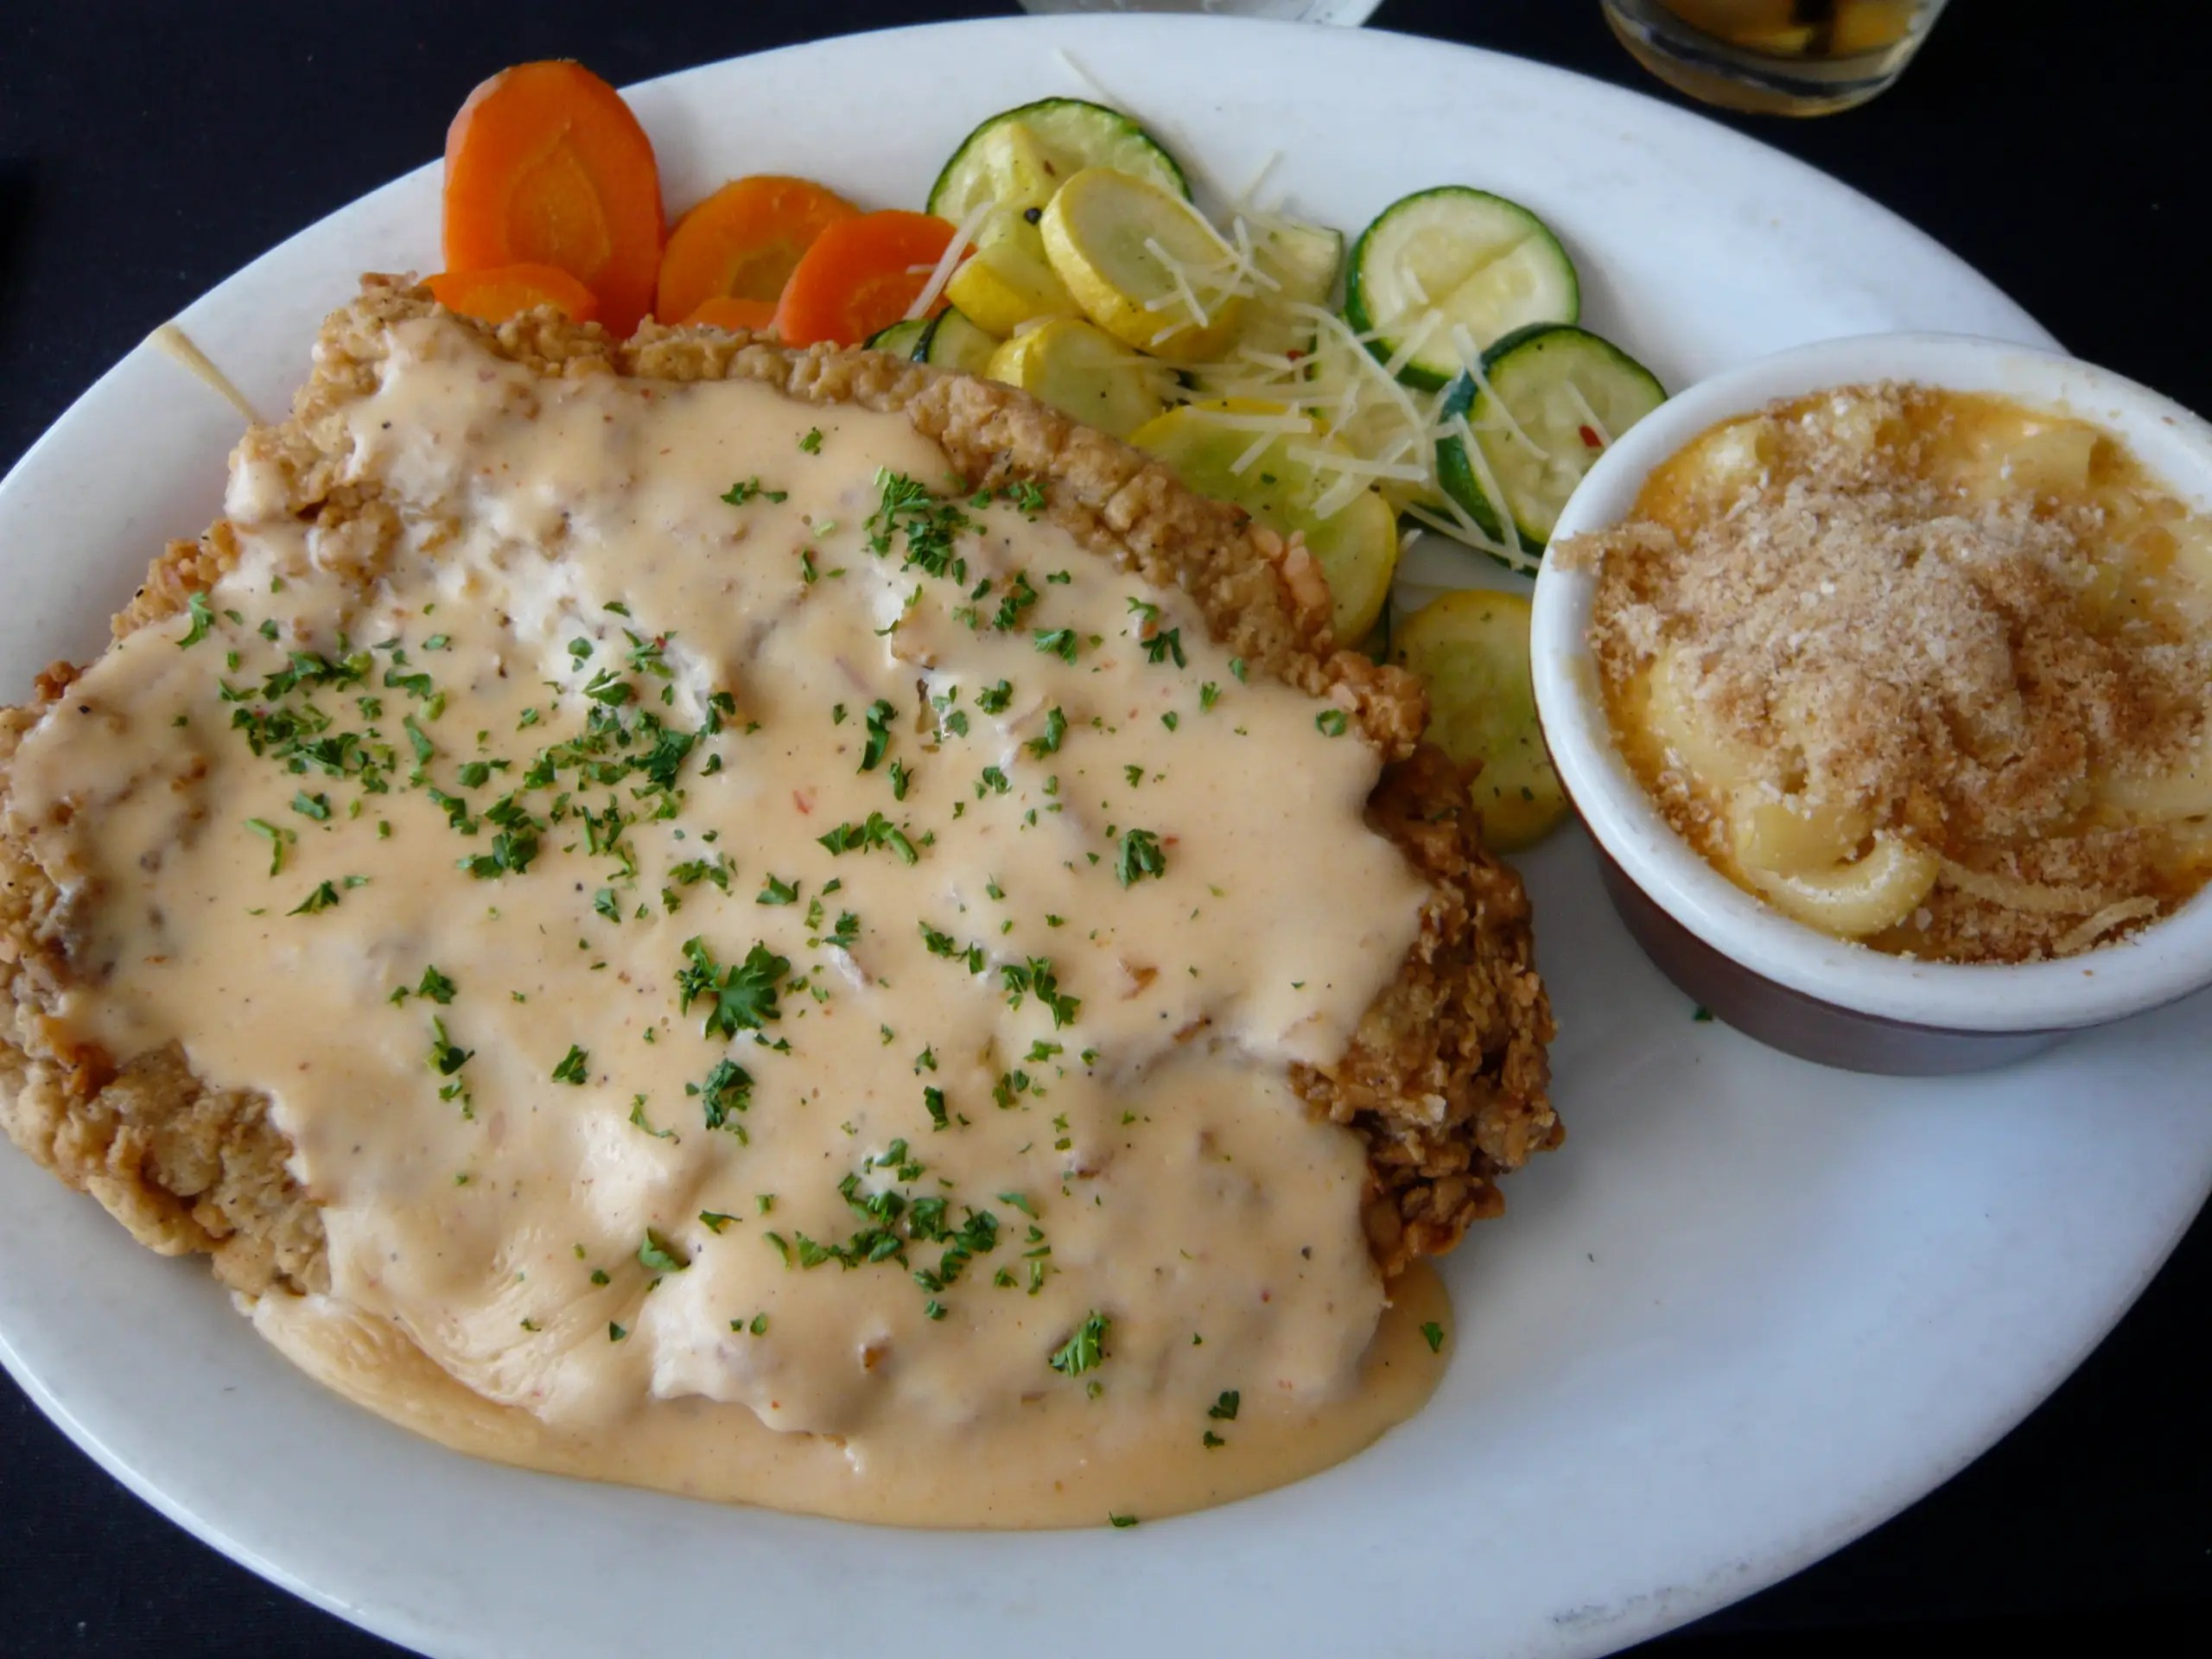 OKLAHOMA: Chow down on some crispy chicken-fried steak, a breaded piece of thin and tenderized steak. The steak cutlet is pretty similar to wiener schnitzel.